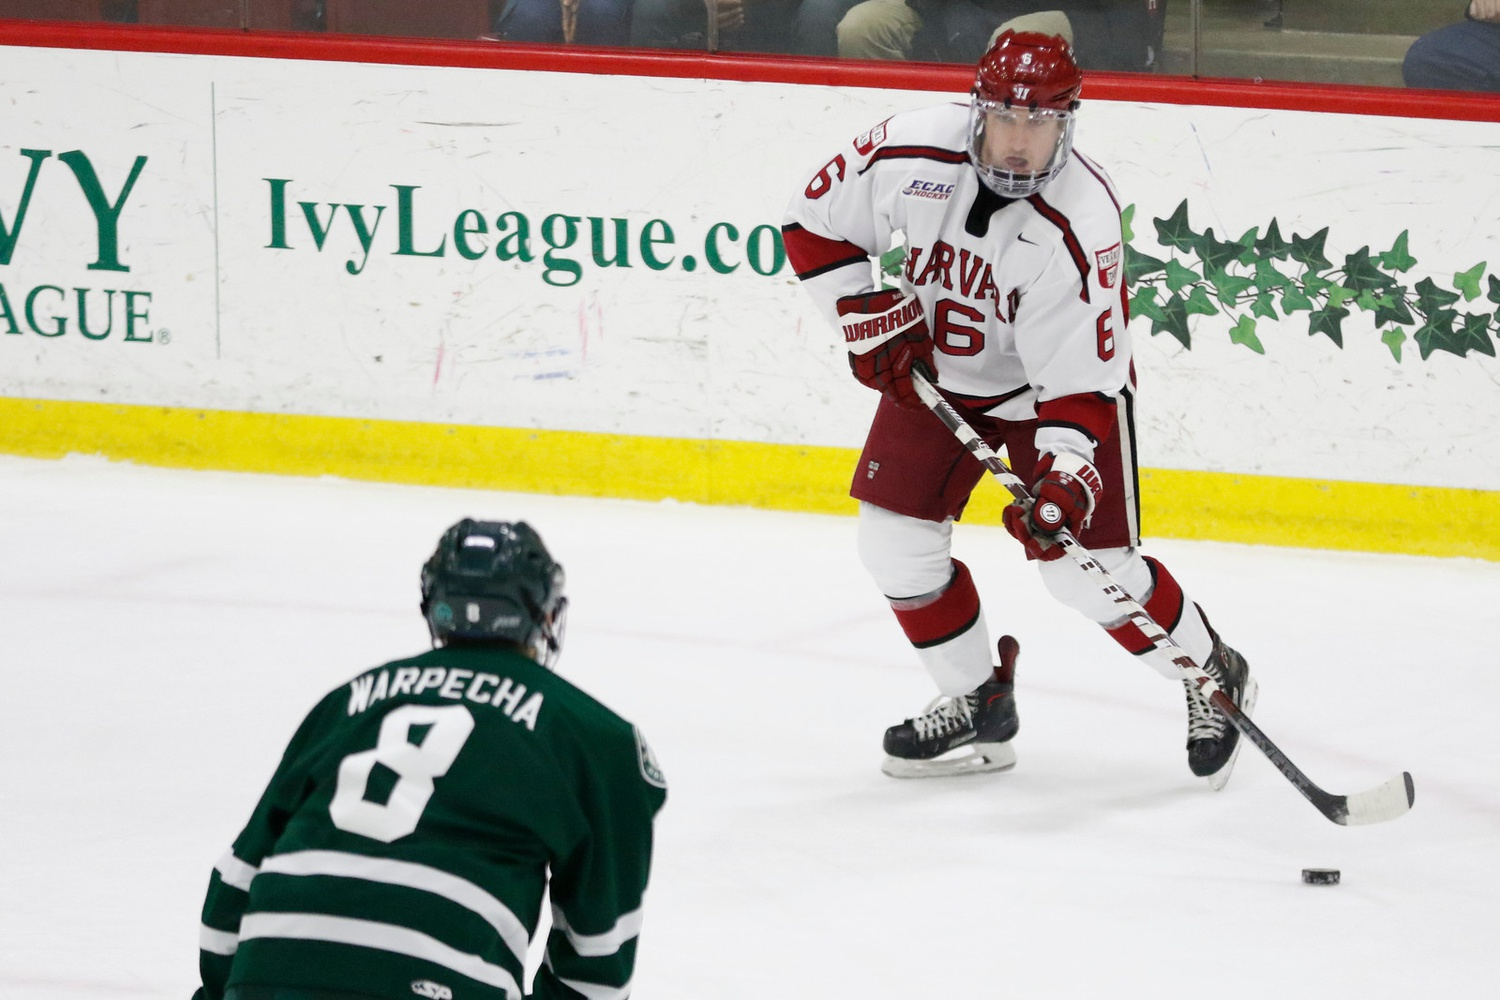 On Friday, the Crimson is hoping for a better result than last year's season-opener against the Big Green, a 7-6 overtime loss.